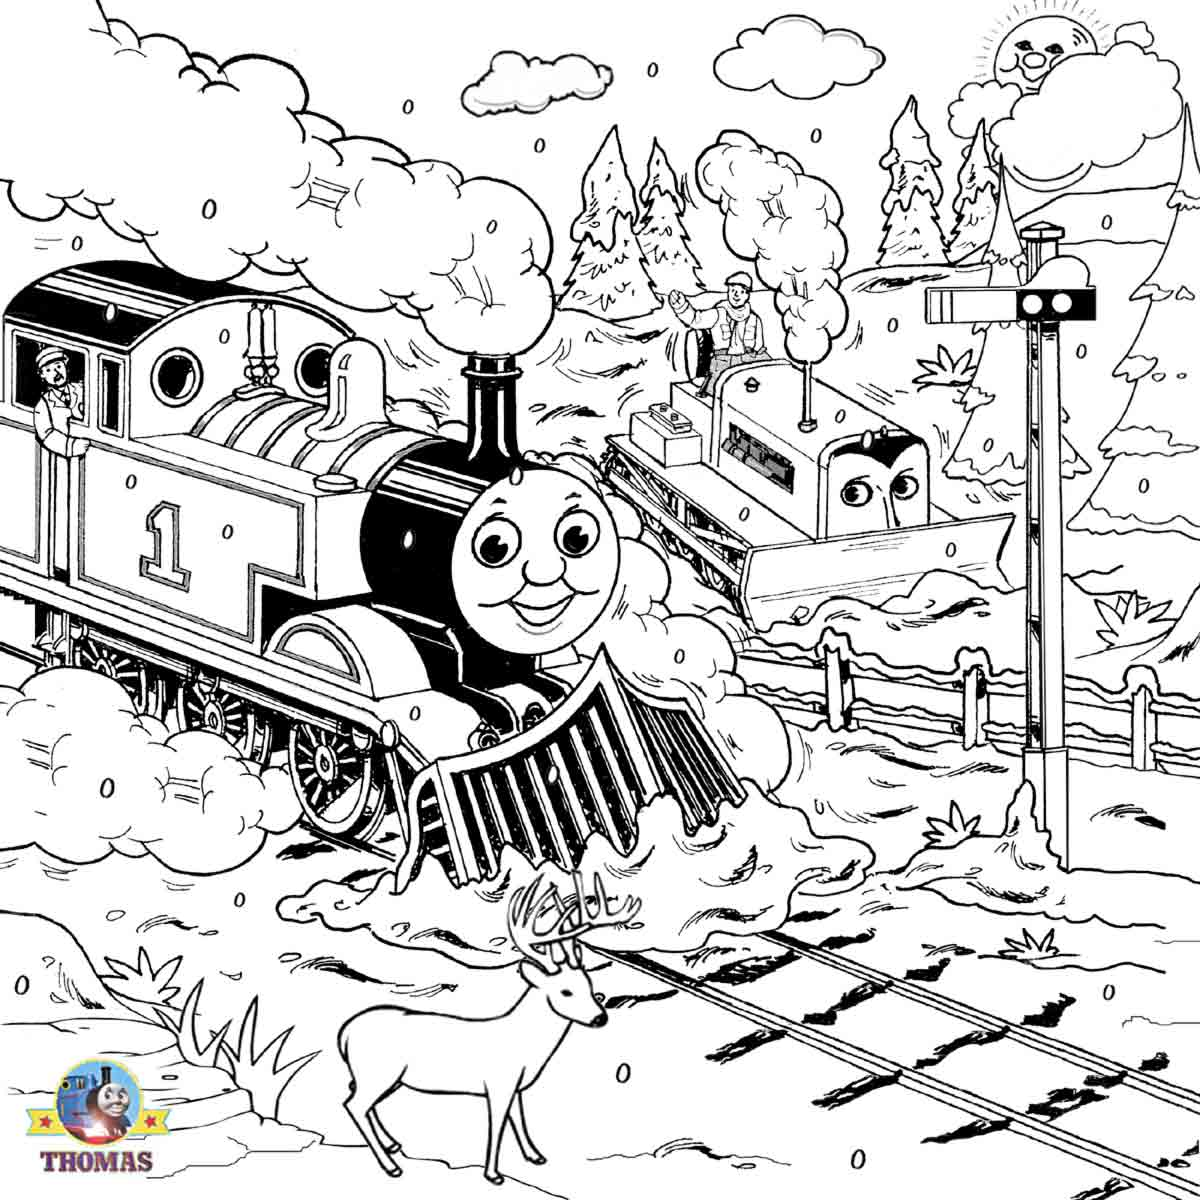 train engine coloring page steam locomotive drawing at getdrawings free download engine page train coloring